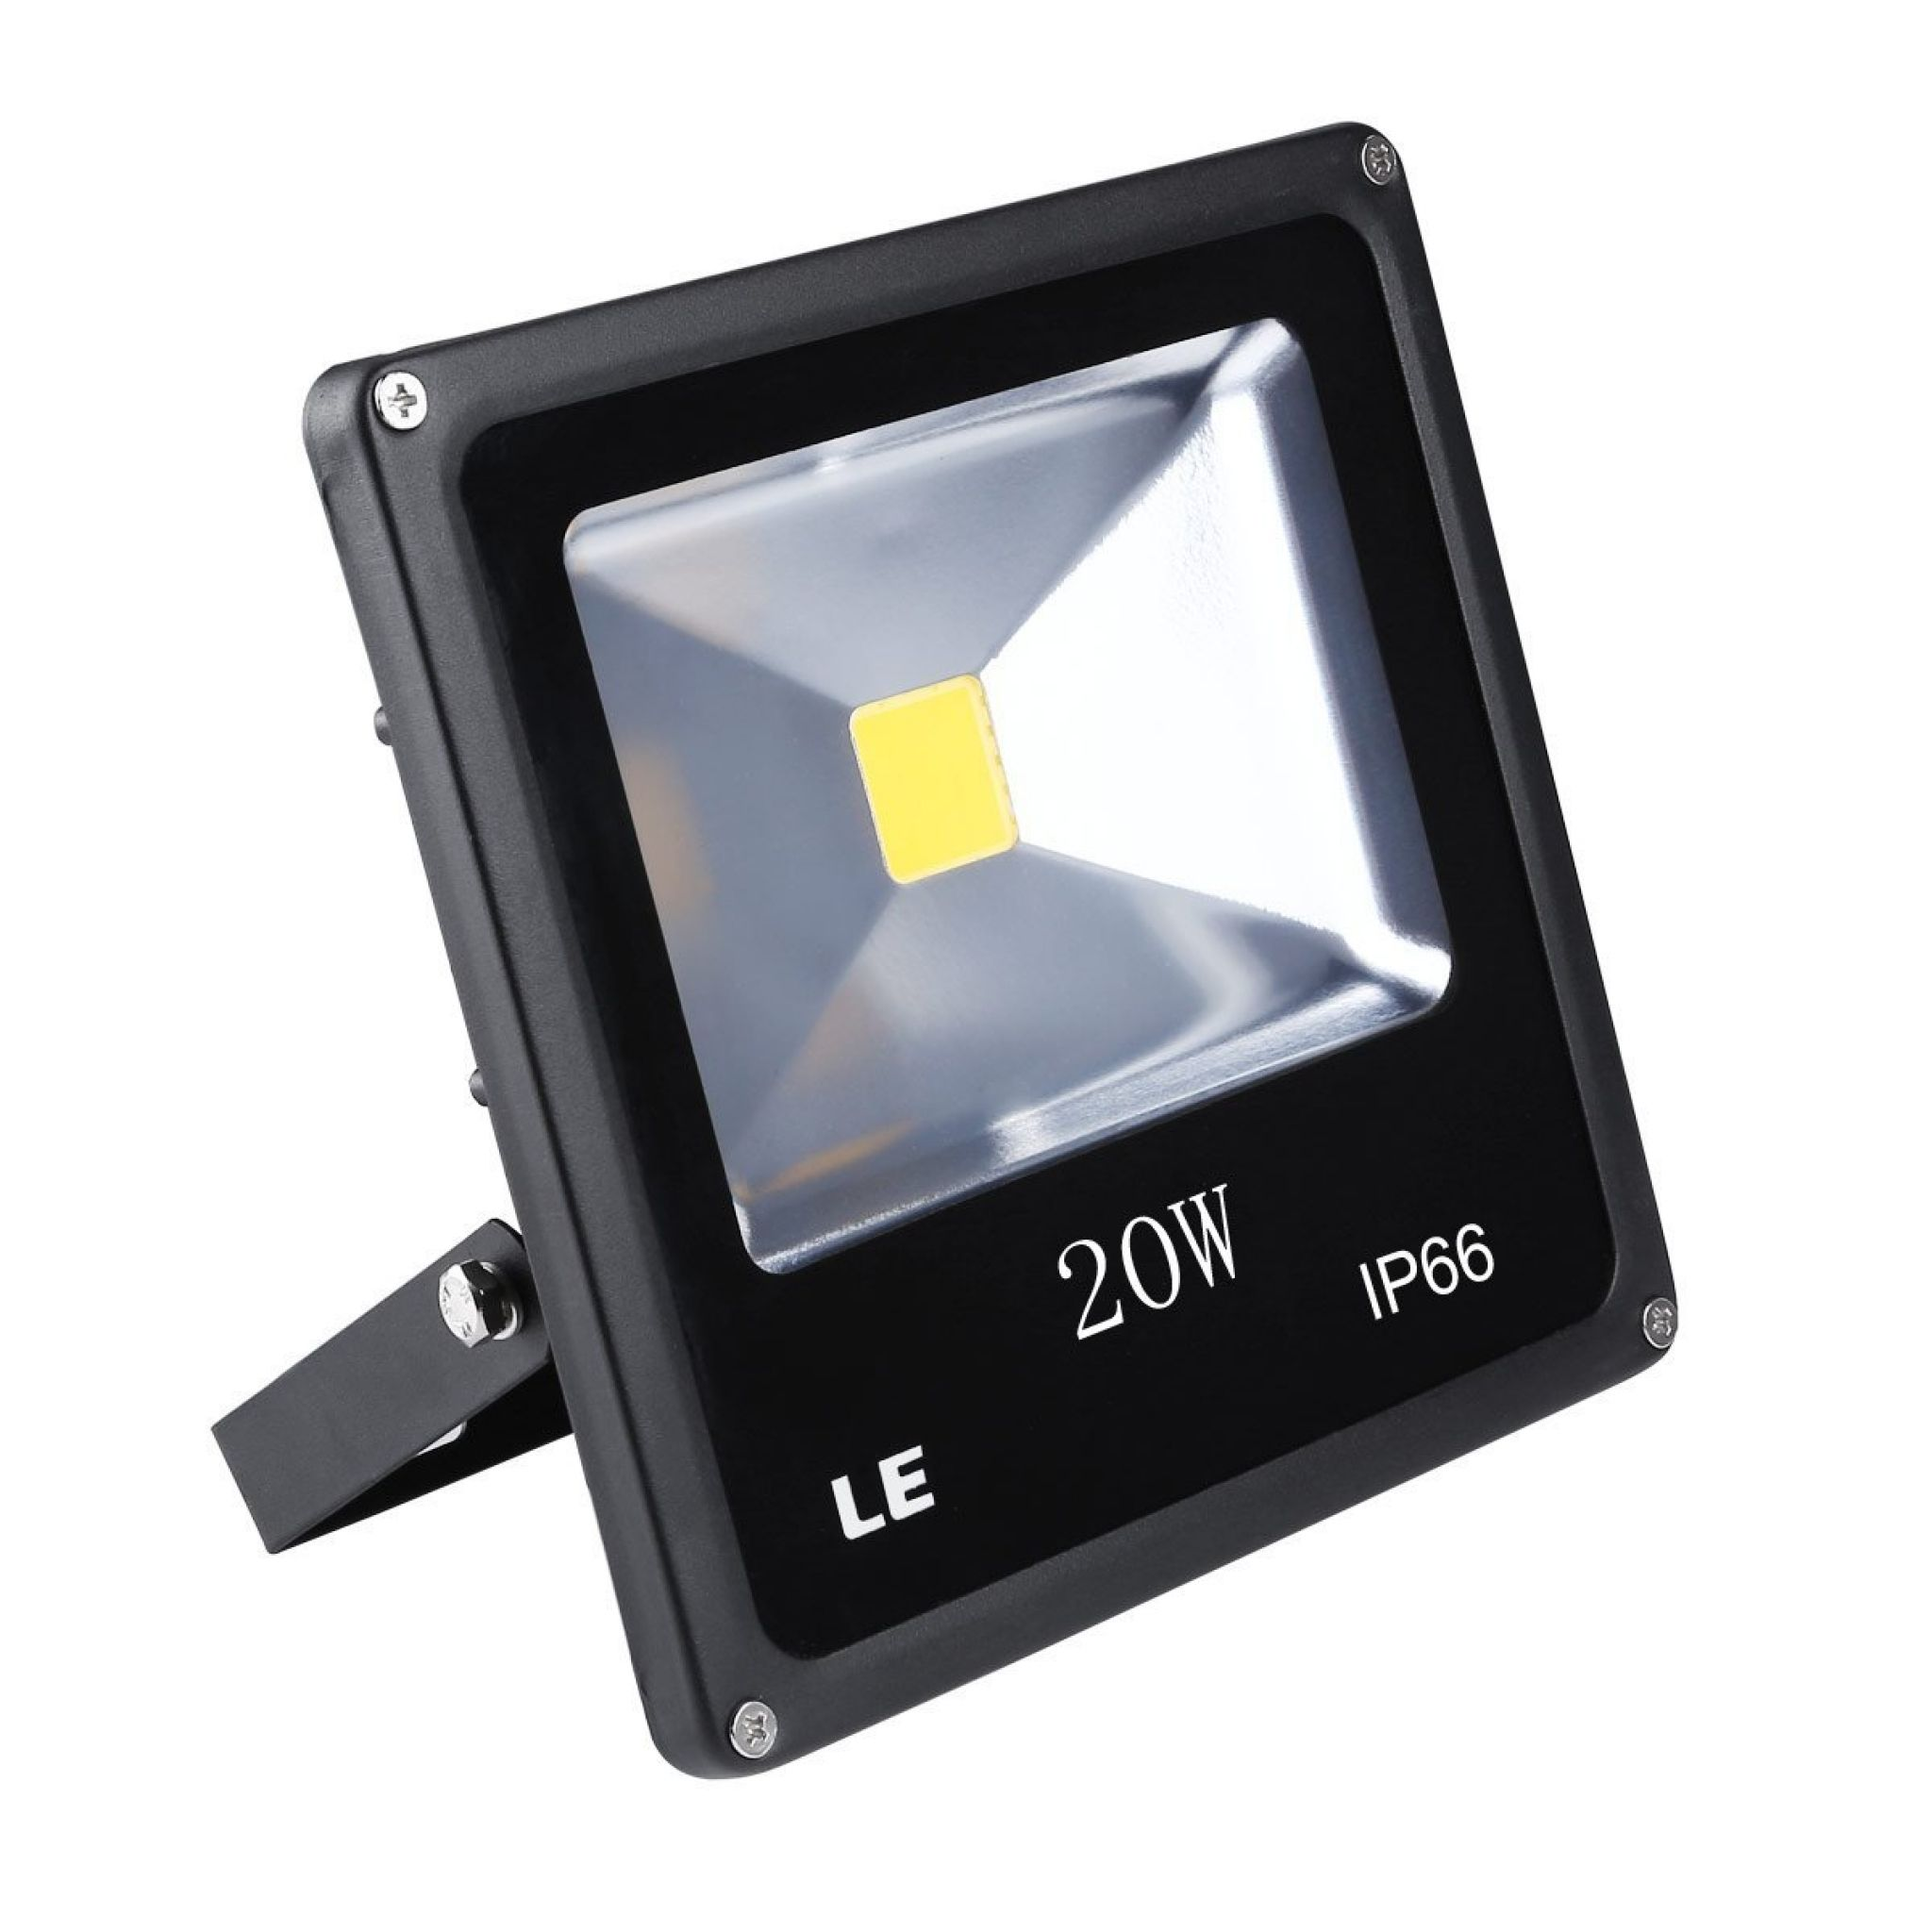 Brightest outdoor led flood lights lowes paint colors interior le super bright outdoor led flood lights halogen bulb equivalent waterproof daylight white security lights floodlight learn more by visiting the image workwithnaturefo